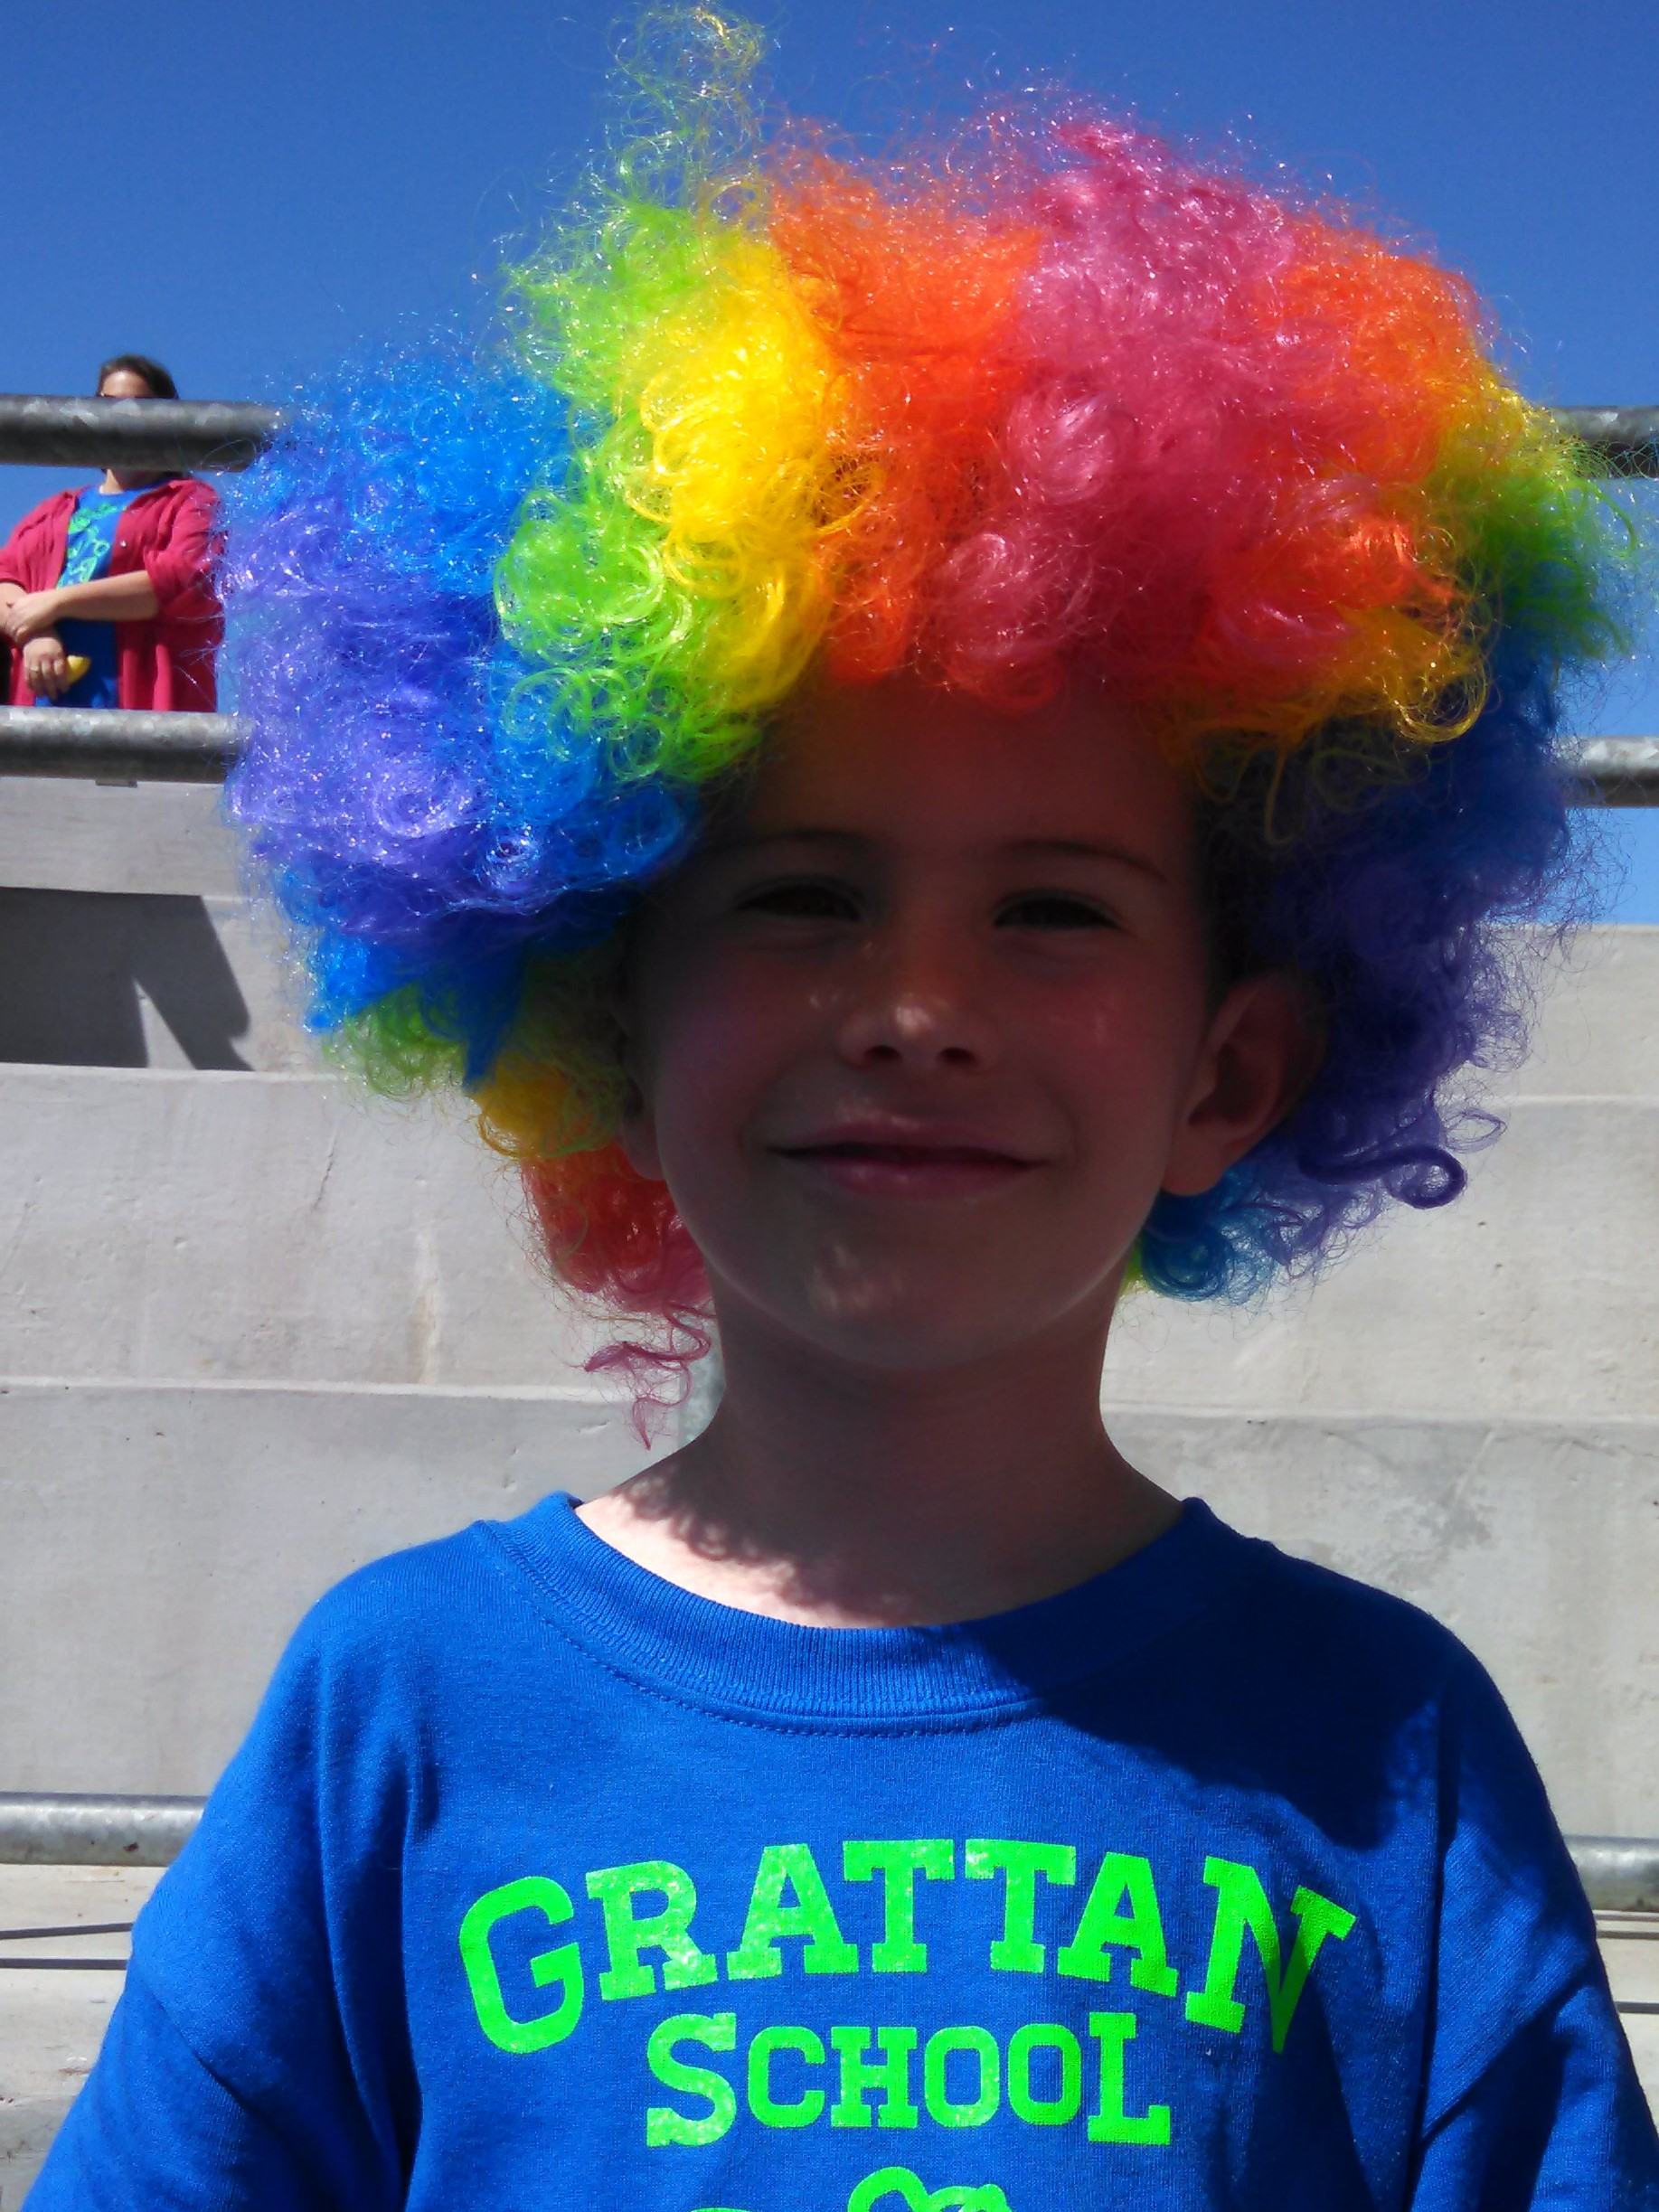 Child wearing rainbow wig at an outdoor school fitness event